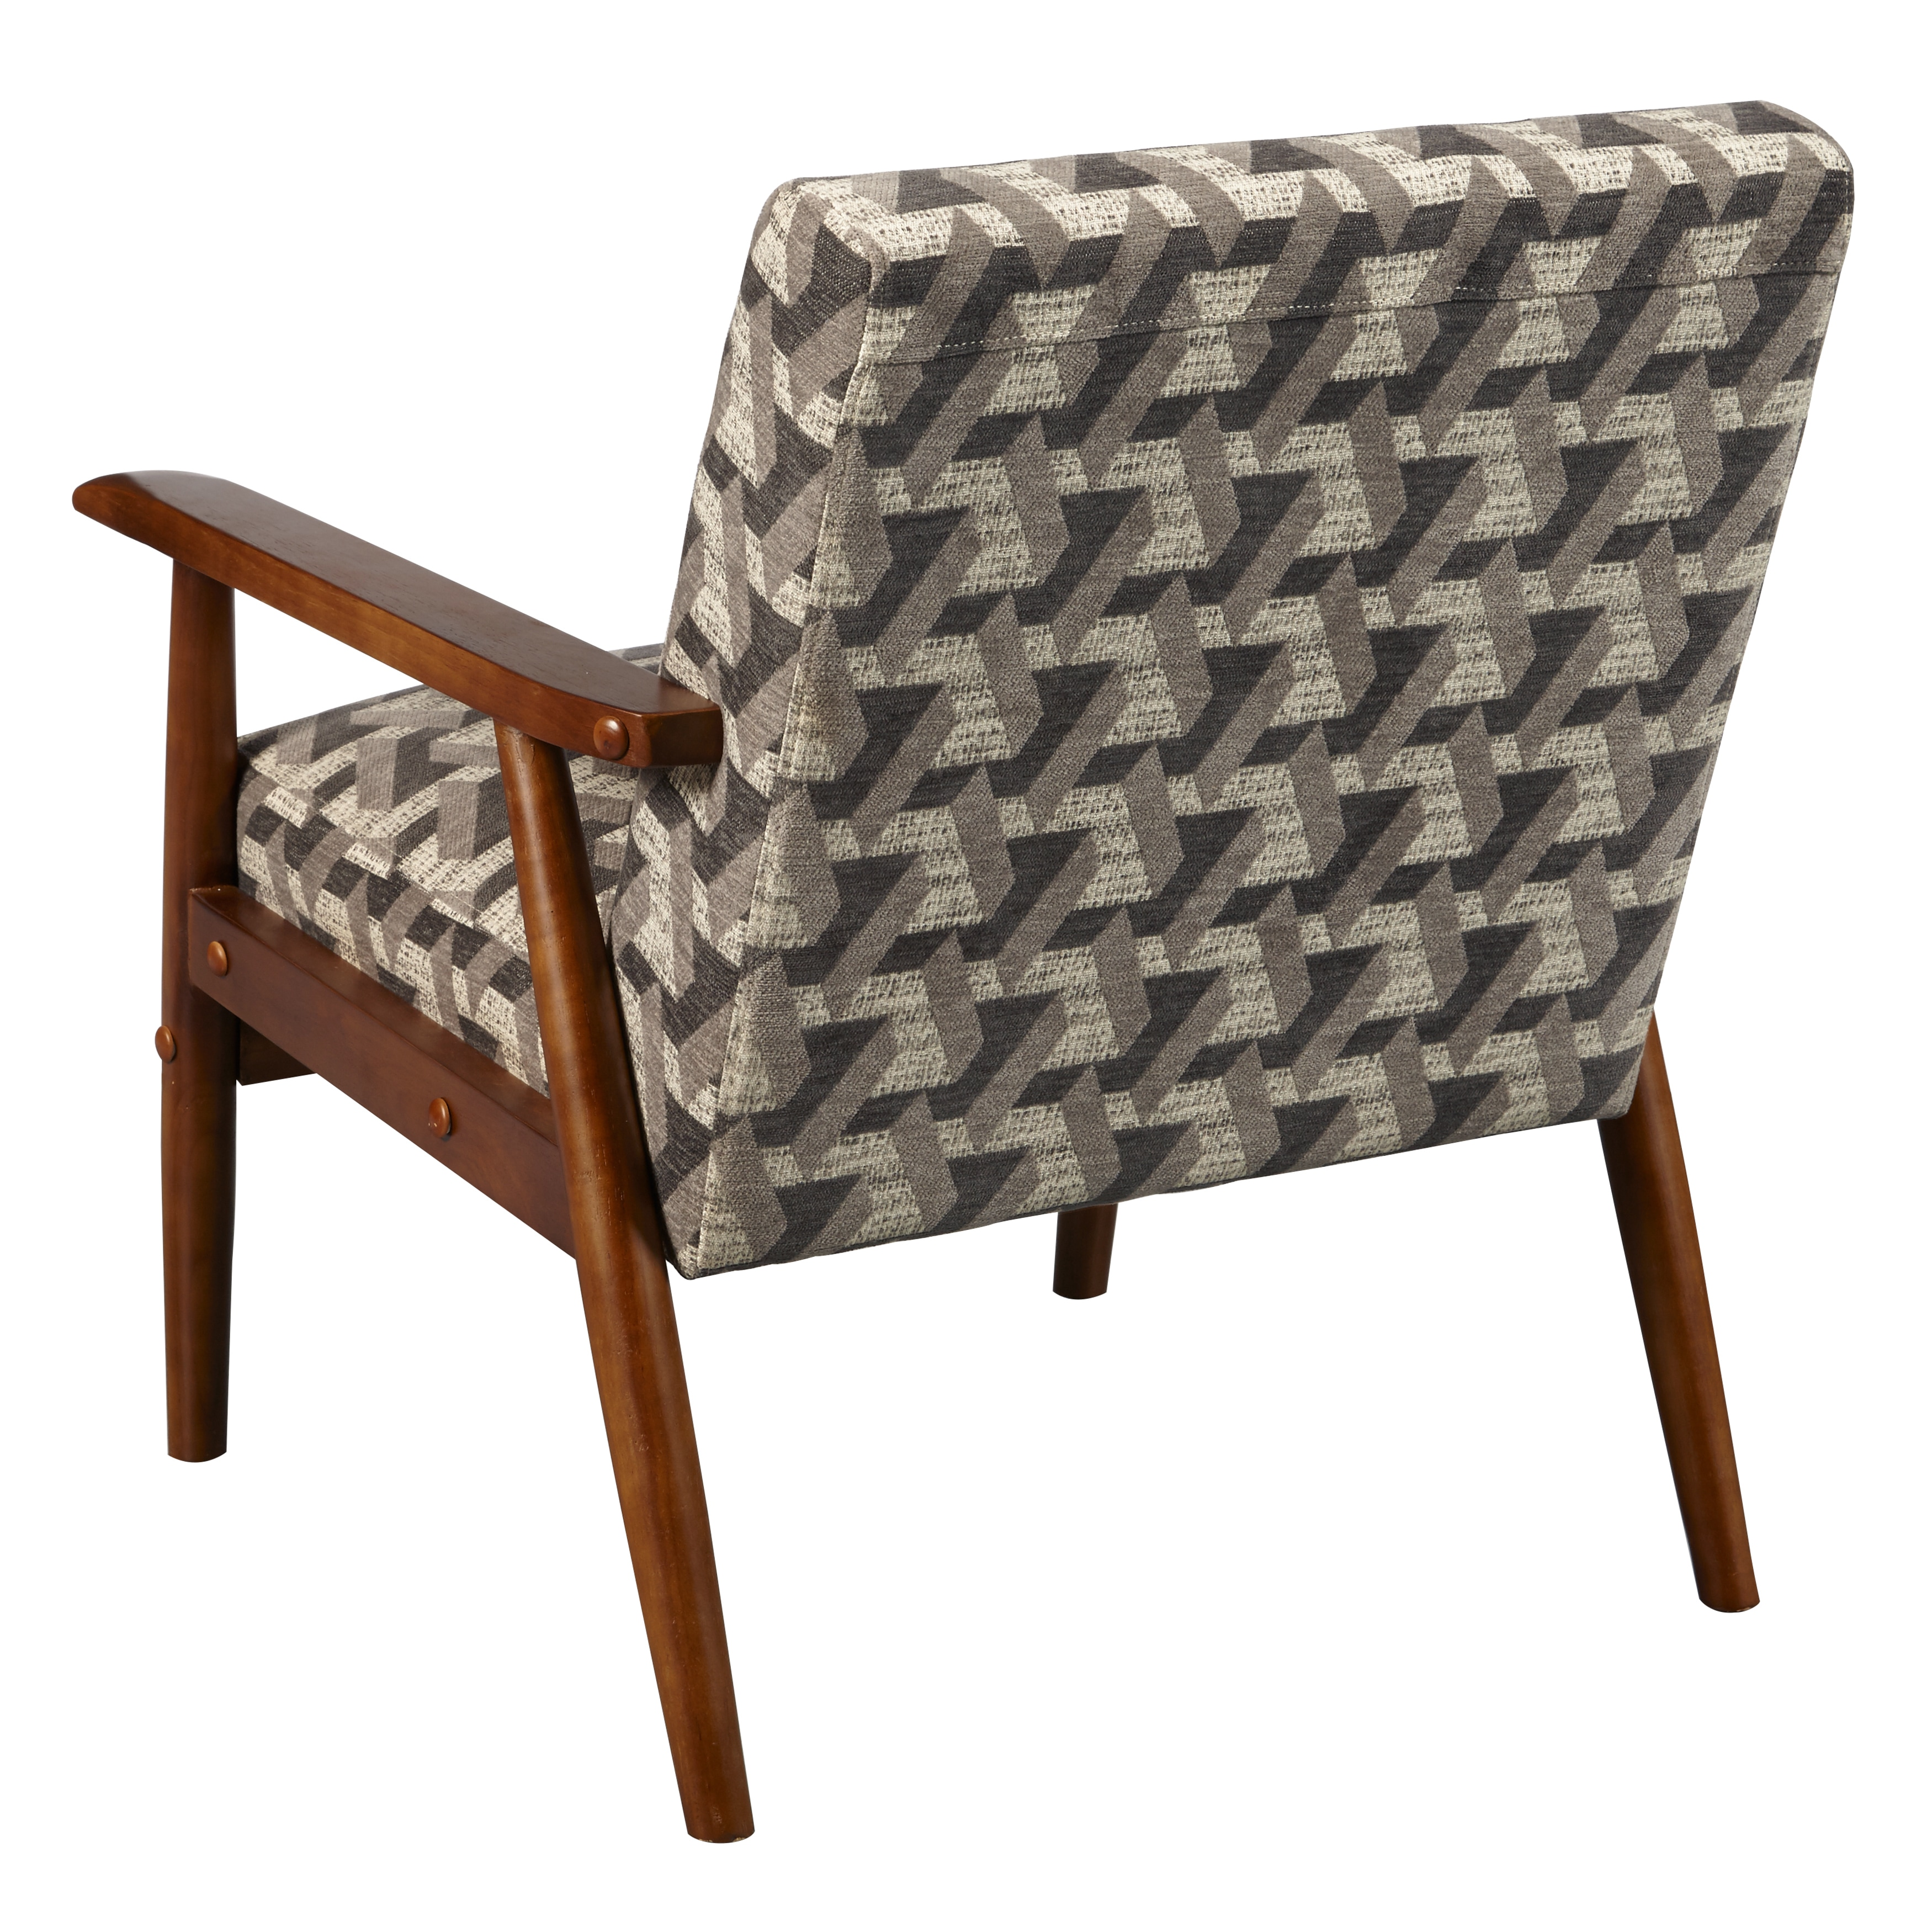 wood frame accent chairs small chair cushions shop in prism flannel free shipping today overstock com 15807429